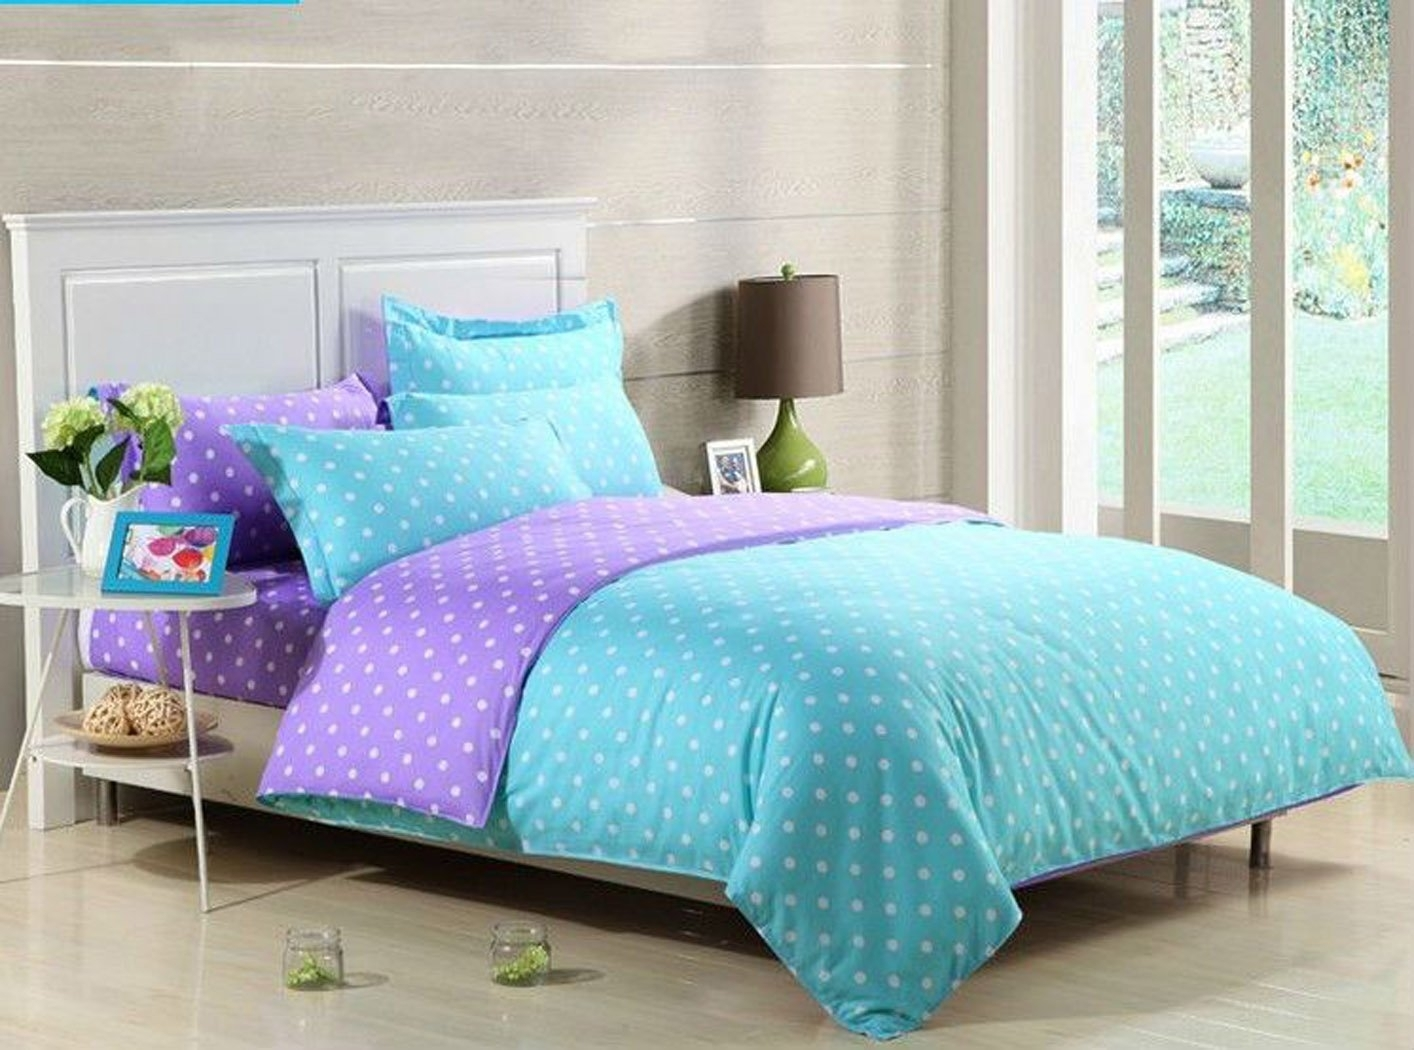 bed comforters along cute turquoise king gallant gh natural size bedspread target sets full an set at throw comforter blue coral with queen imageunbelievable kohls navy bedspreads twin grey